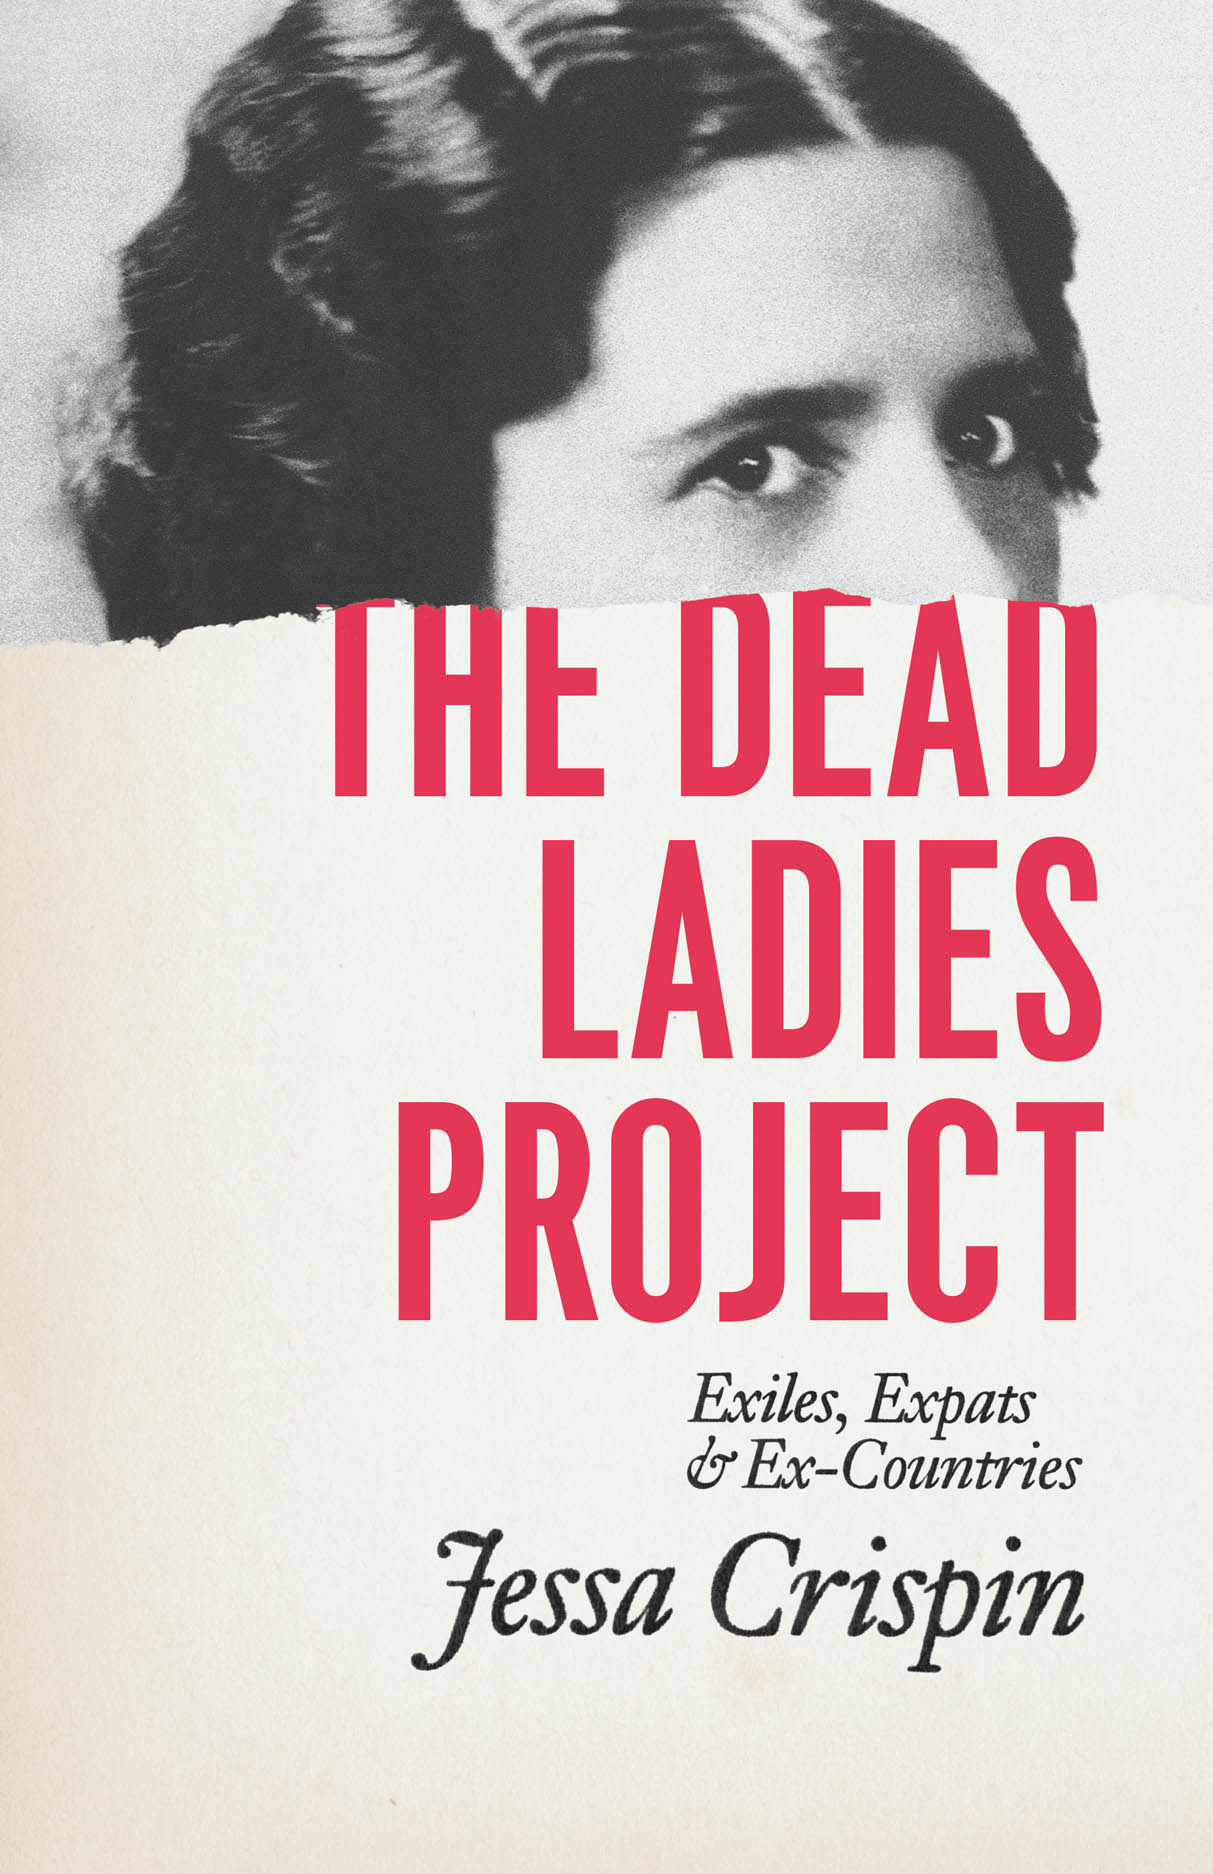 The Dead Ladies Project: Exiles, Expats, and Ex-Countries